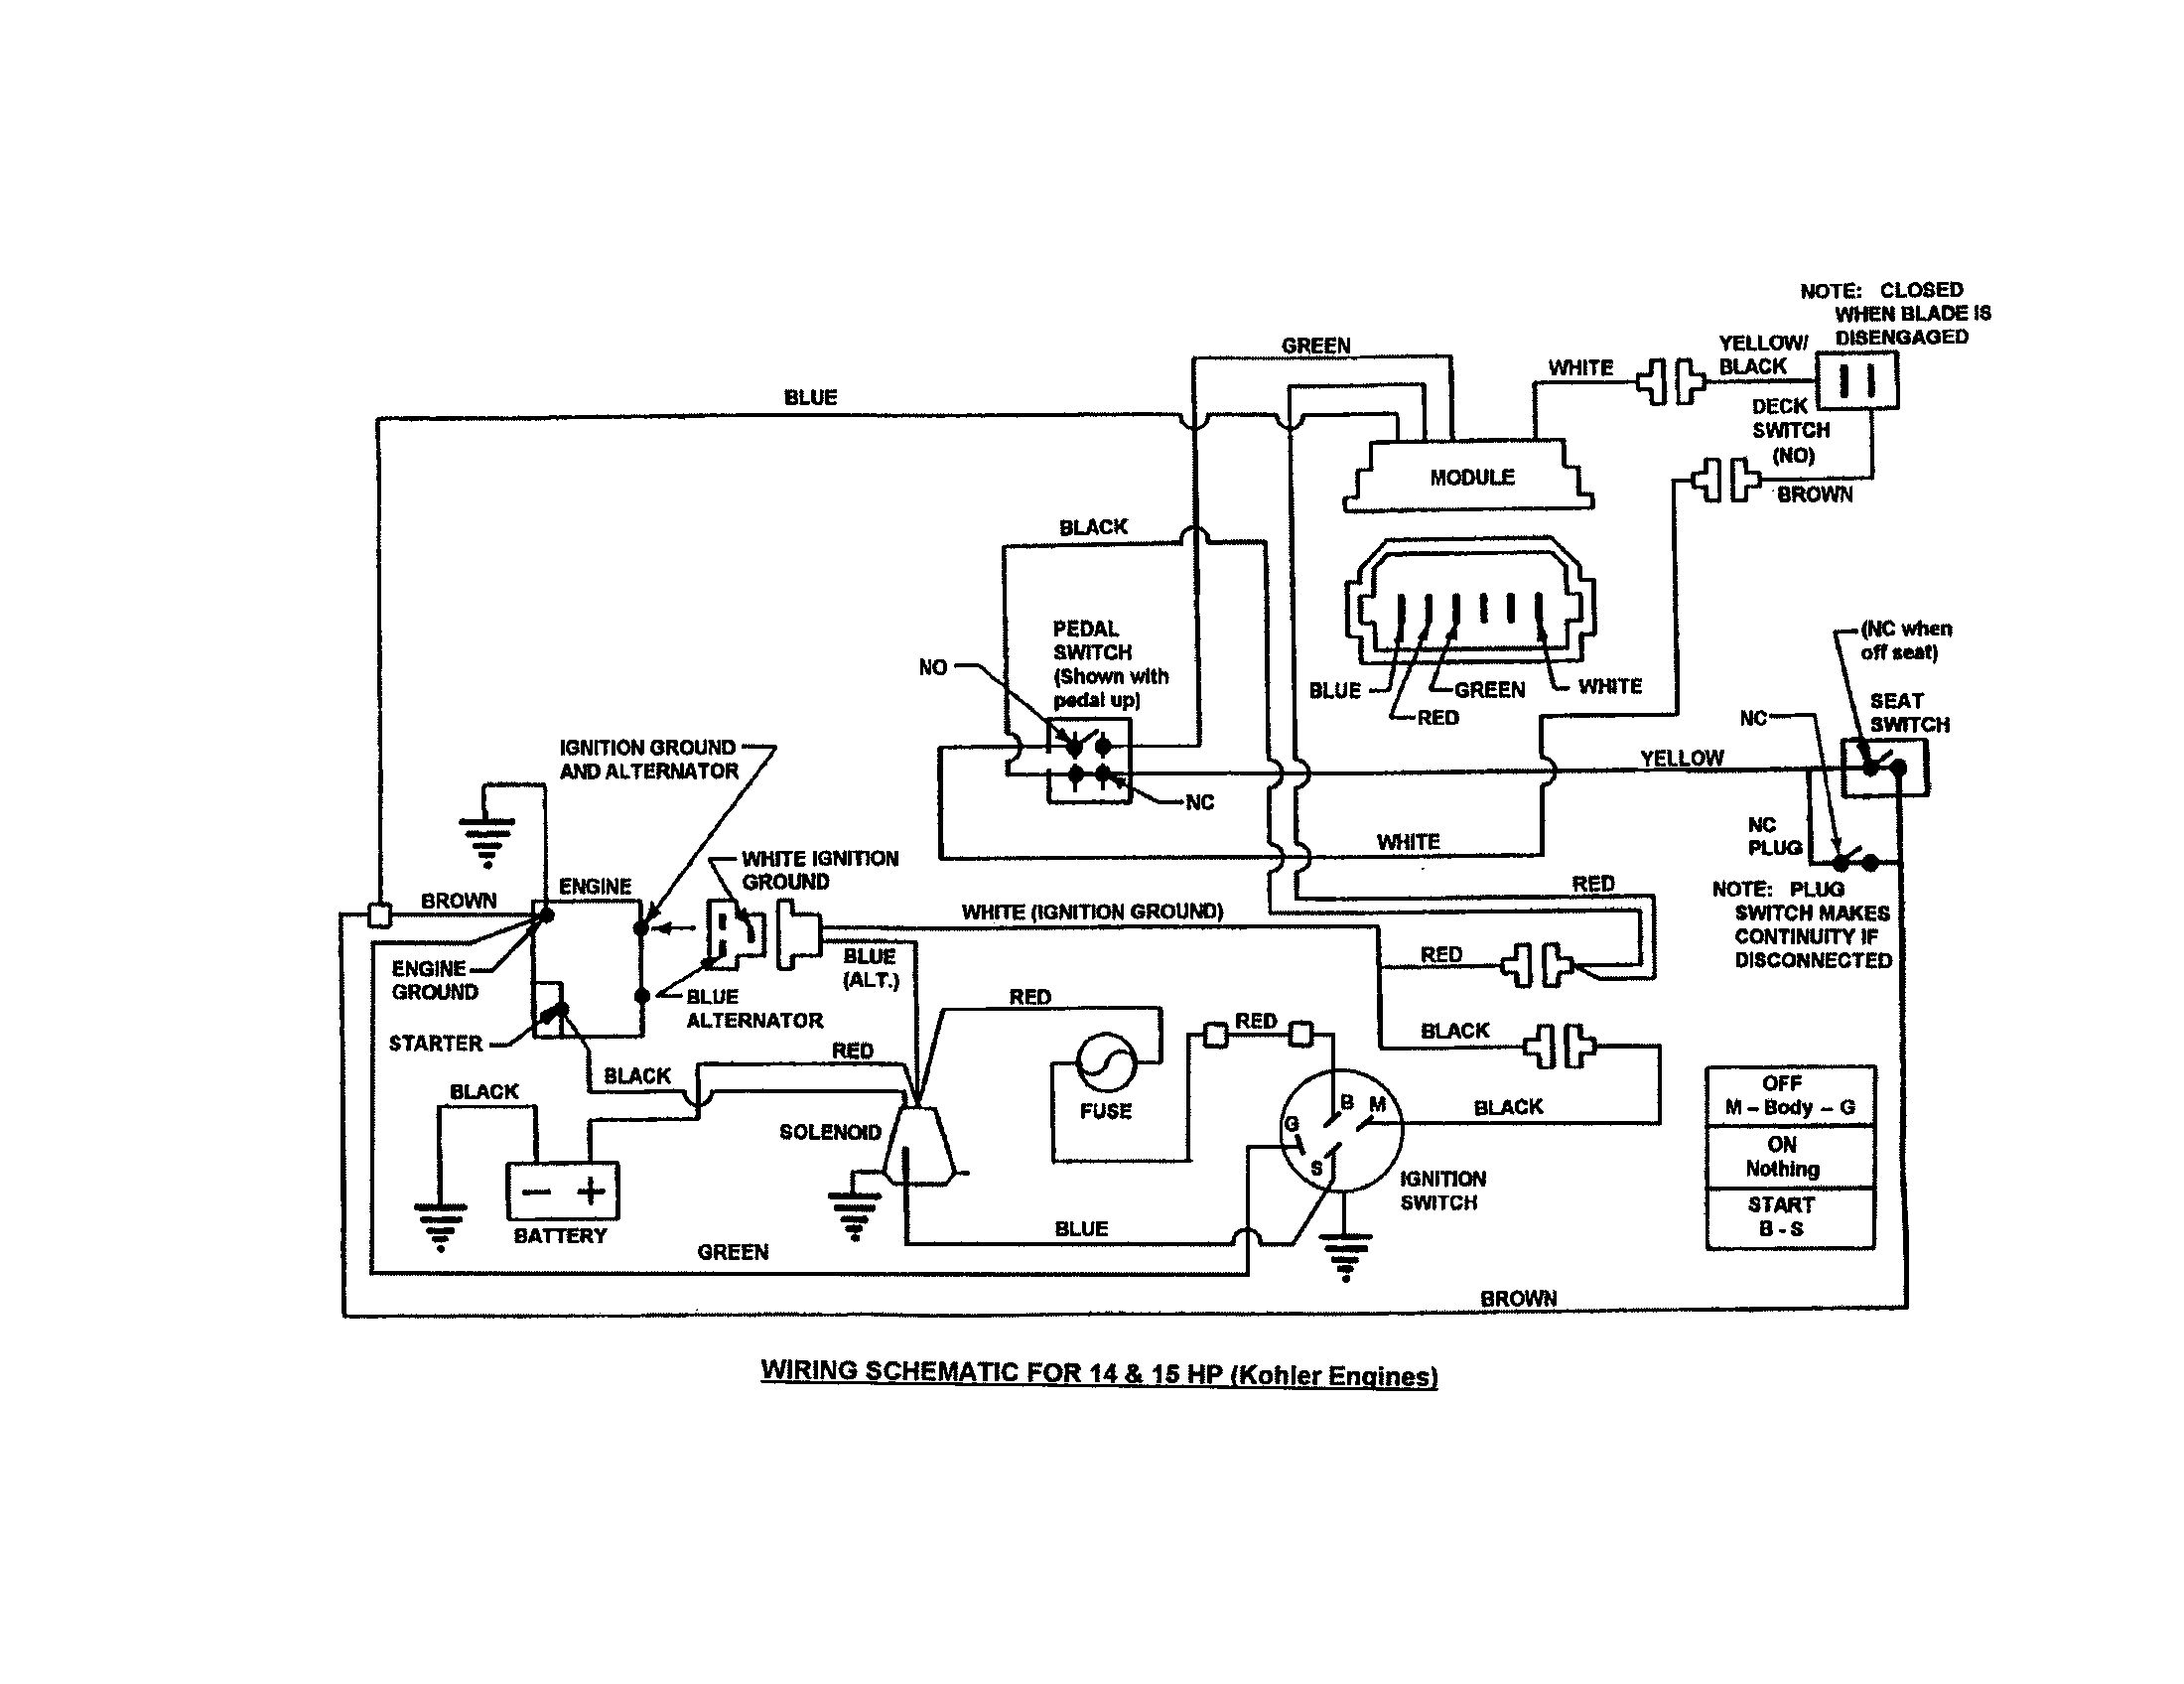 hight resolution of snapper 301022be wiring schematic 14 15 hp diagram